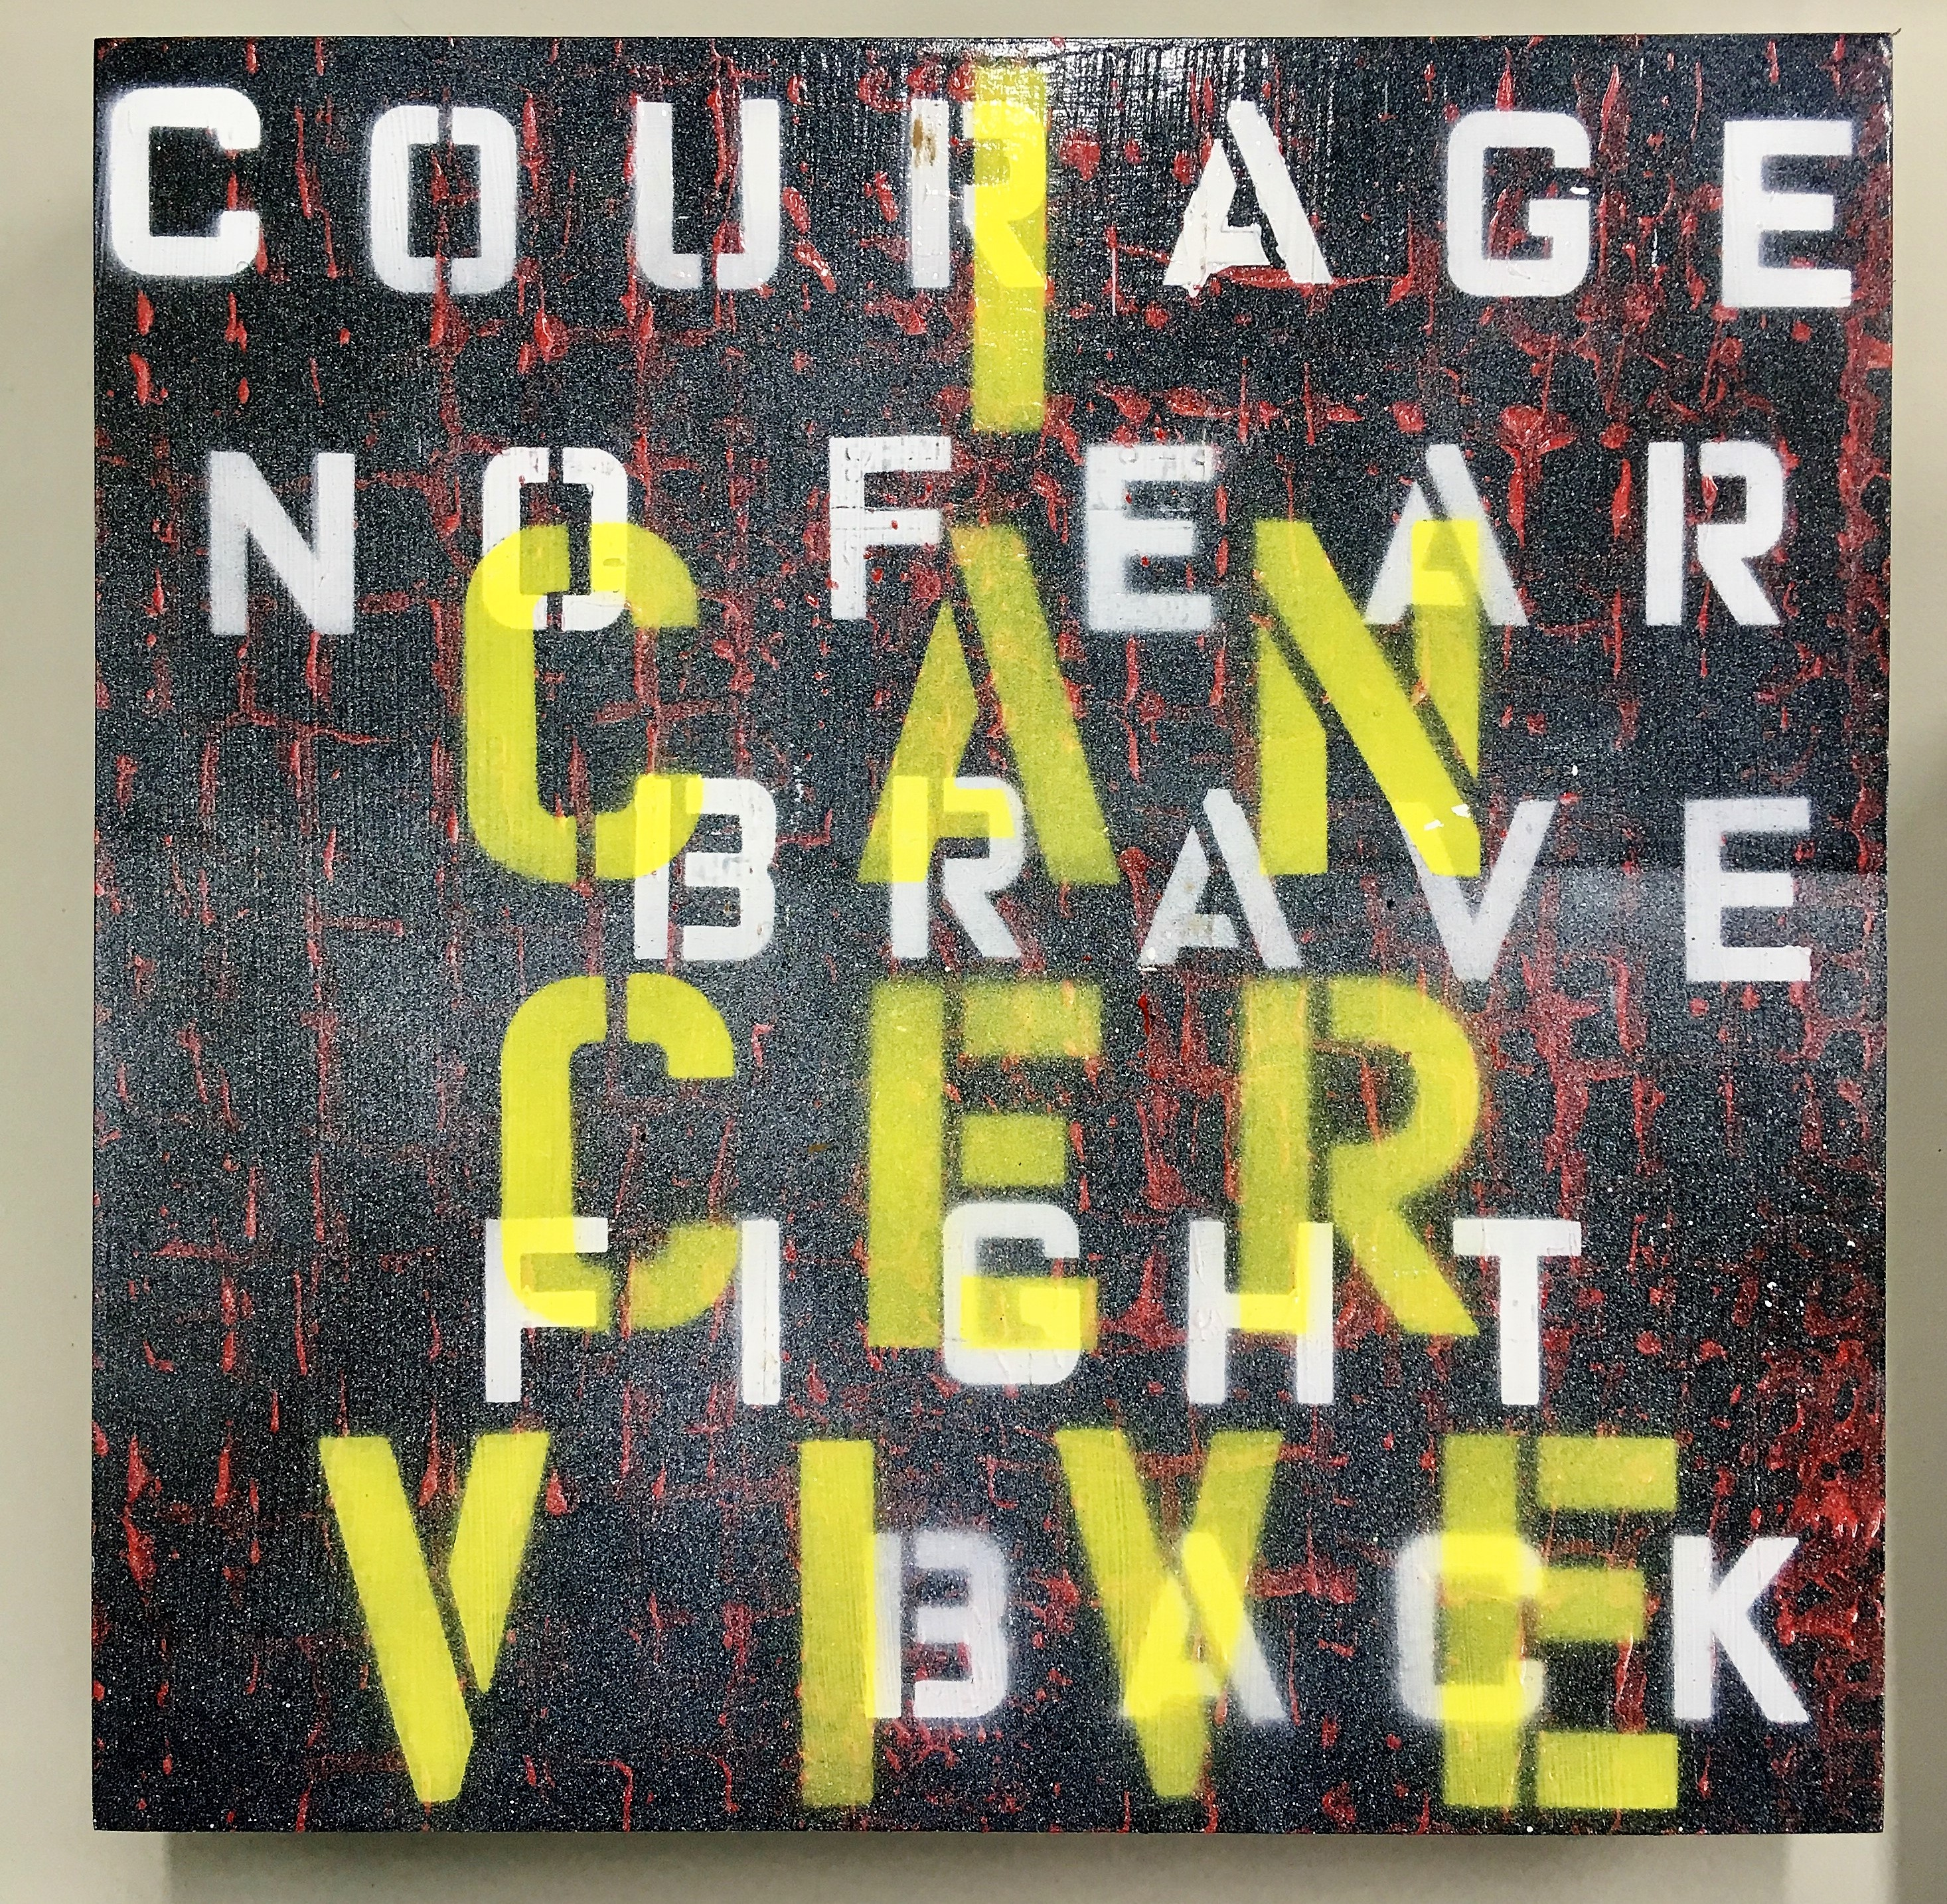 I Can-Cer Vive 3 (2018)